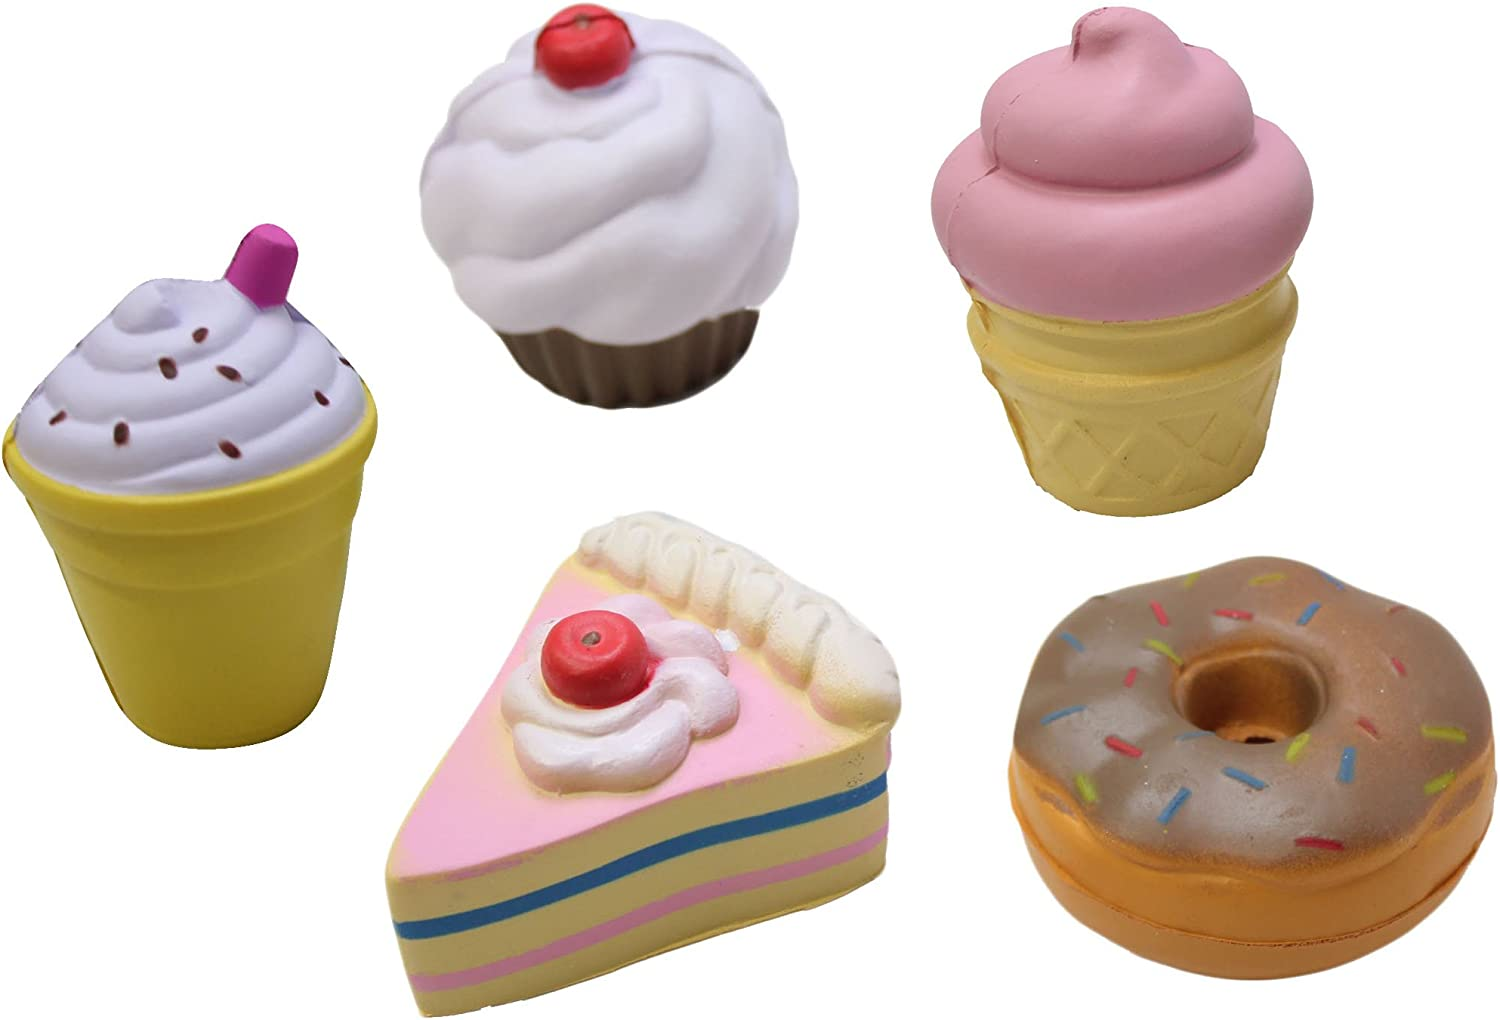 Curious Minds Busy Bags Bundle of 5 Sweet Treats Food Stress Balls Small Novelty Toy